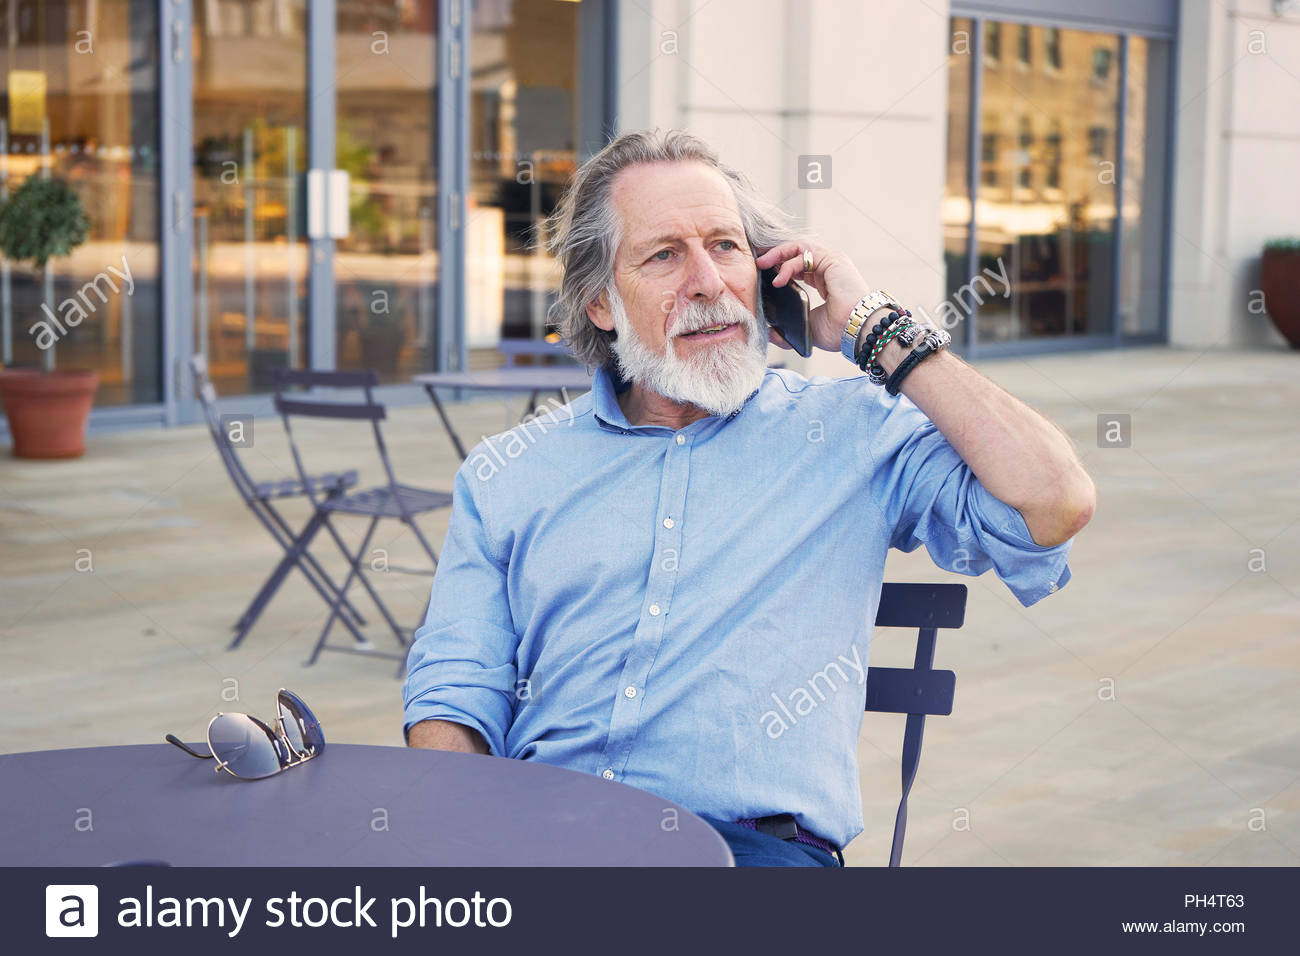 Senior man on phone call at table Photo Stock